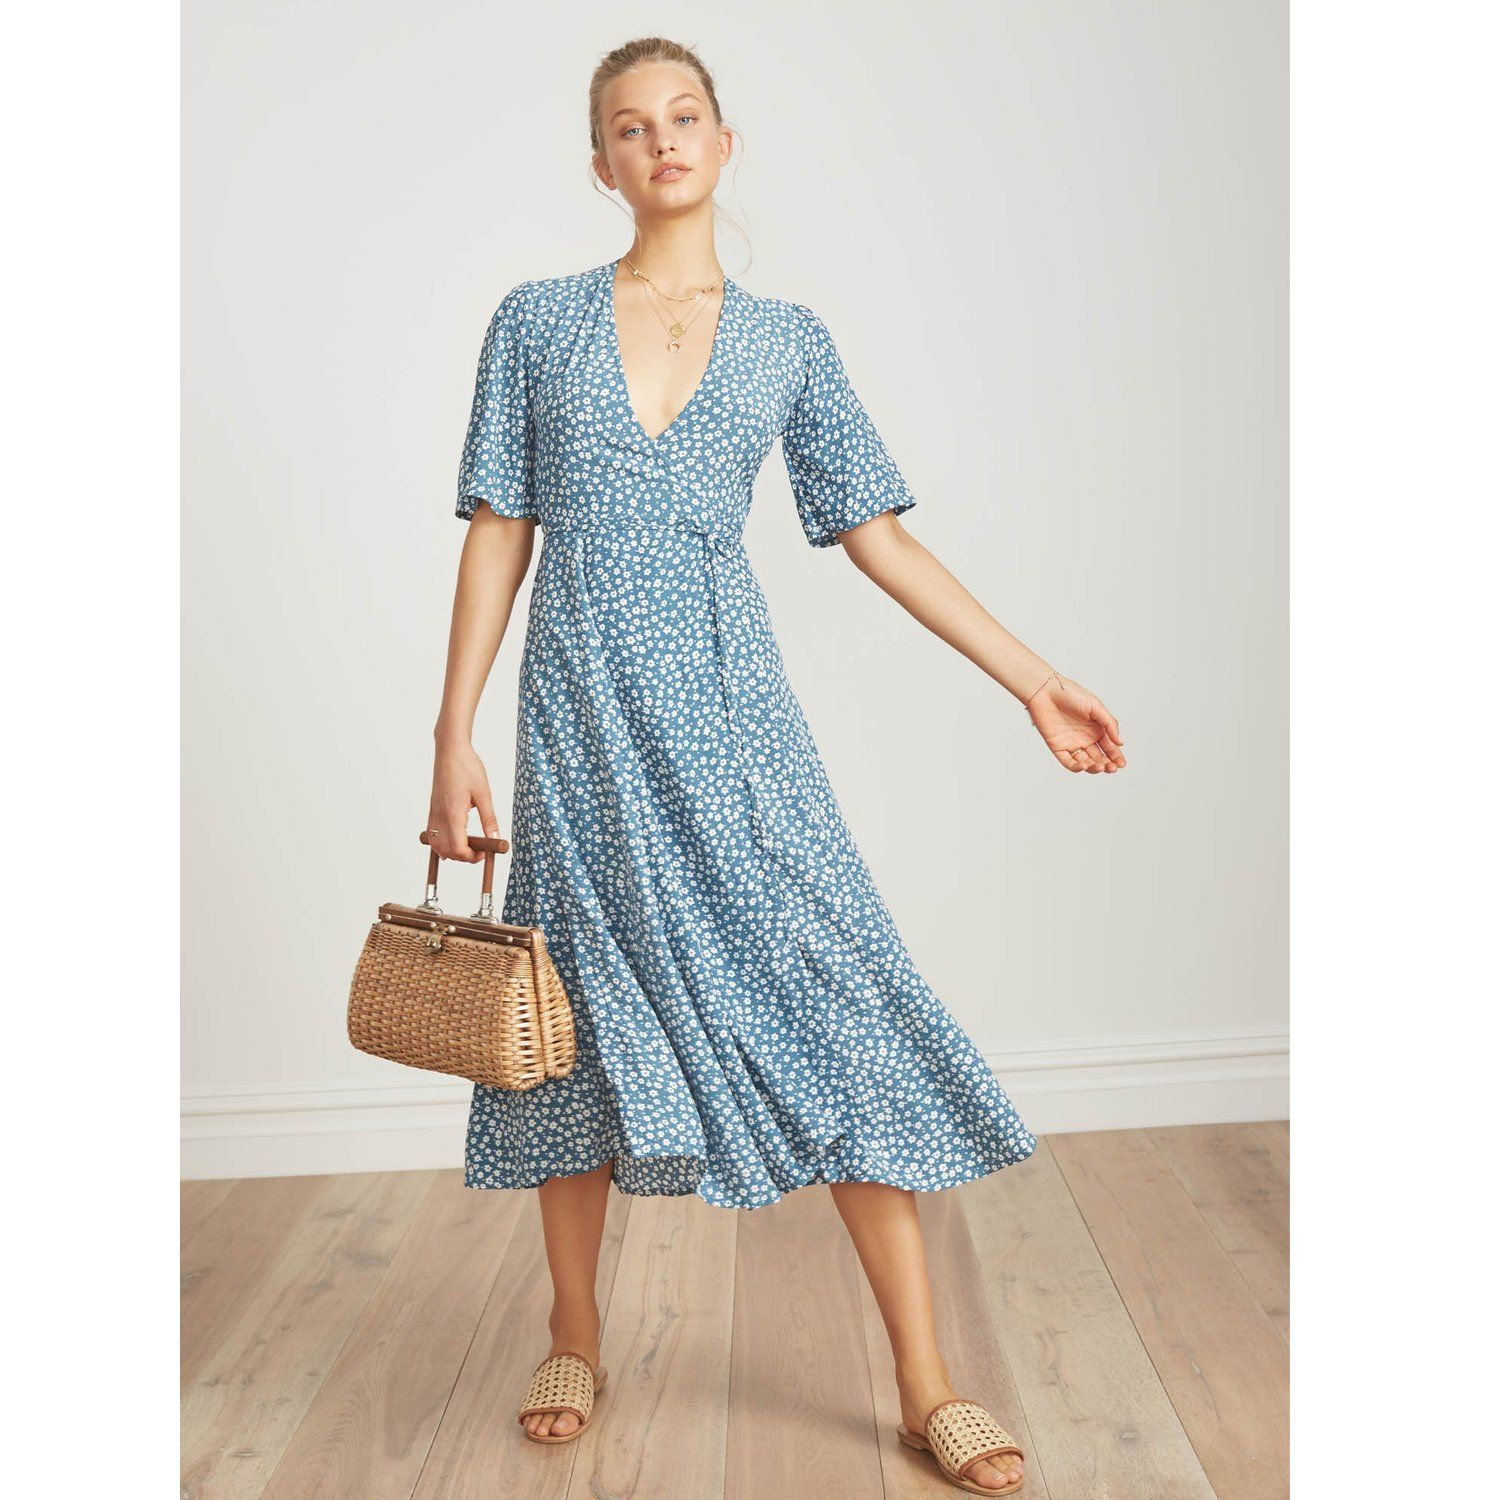 Discount Lowest Price Chloe Midi Dress Faithfull The Brand Authentic Cheap Price Discount Extremely Footaction For Sale rDvQMNV